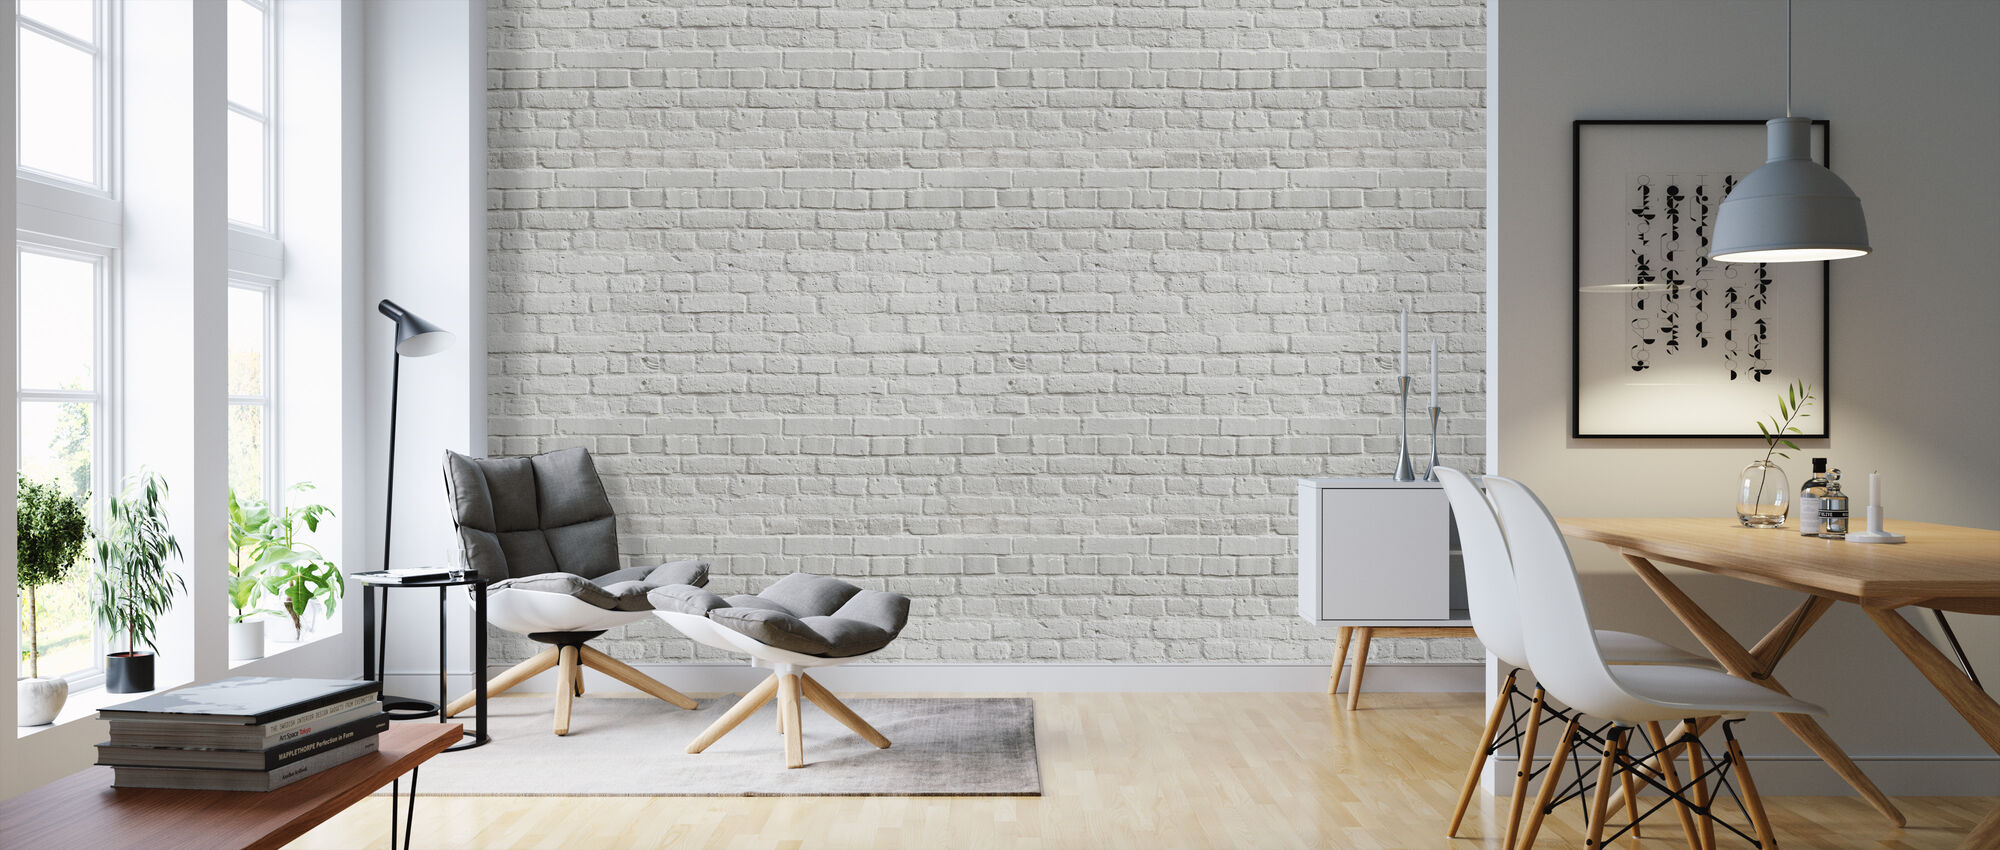 White Colored Brick Wall - Wallpaper - Living Room